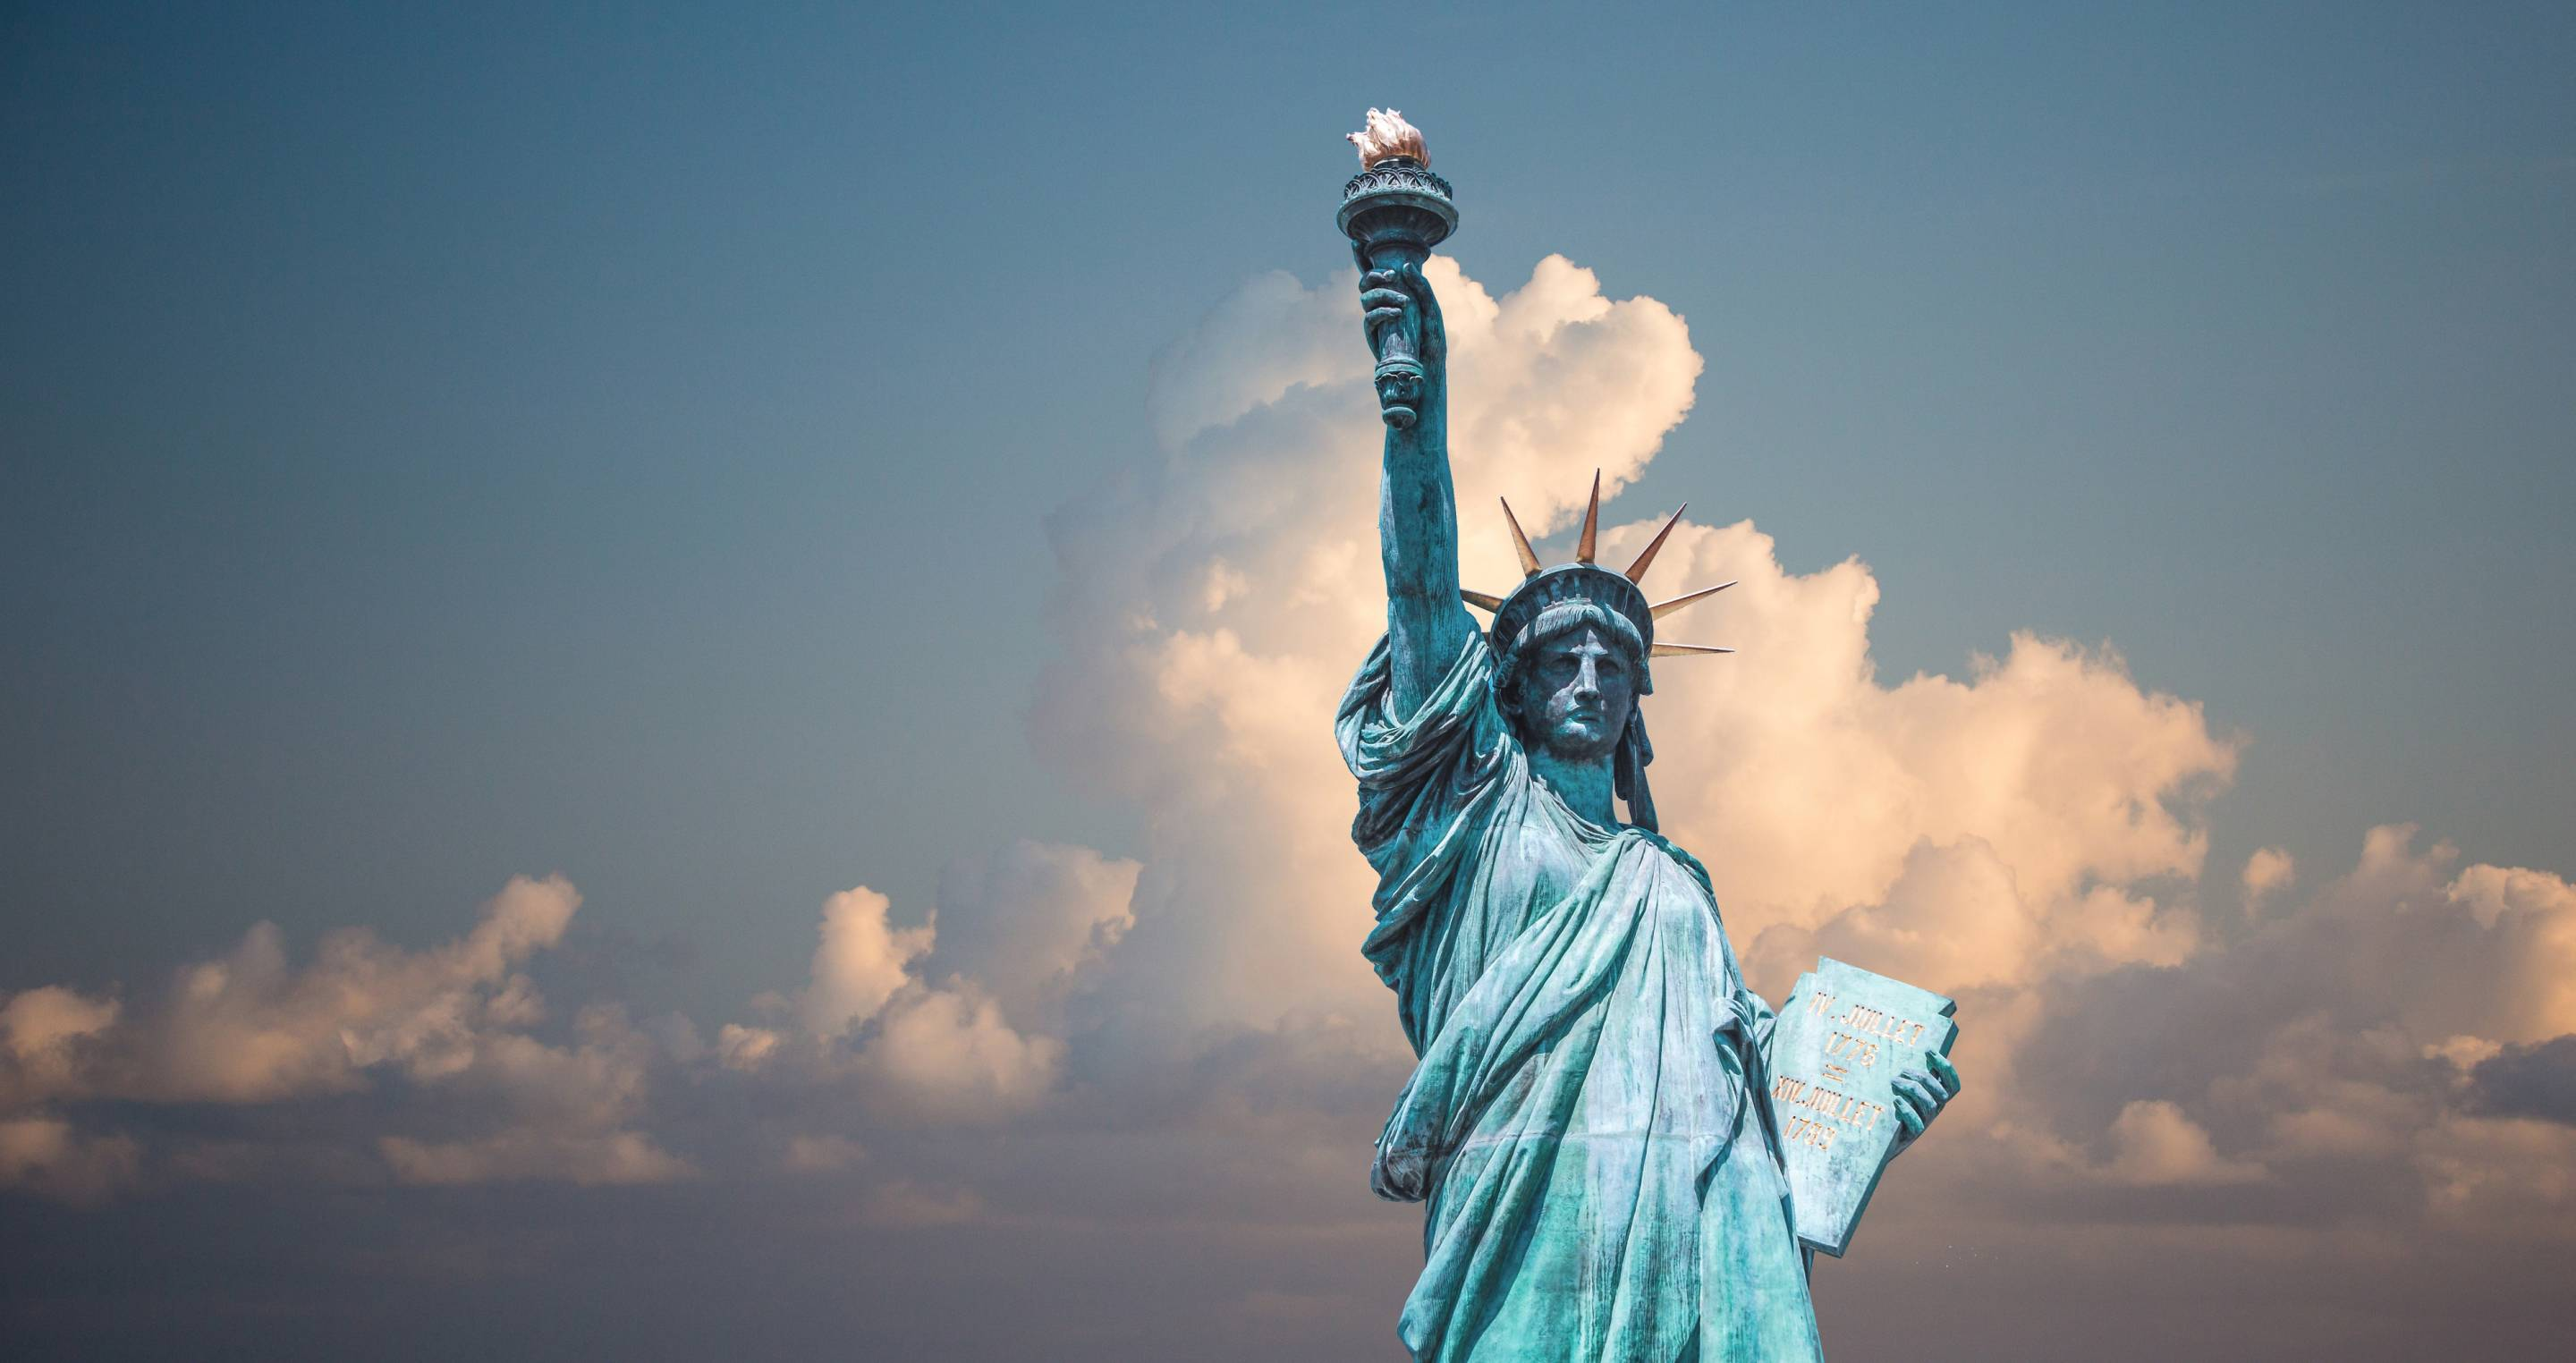 gsp-social-influencer-statue-of-liberty